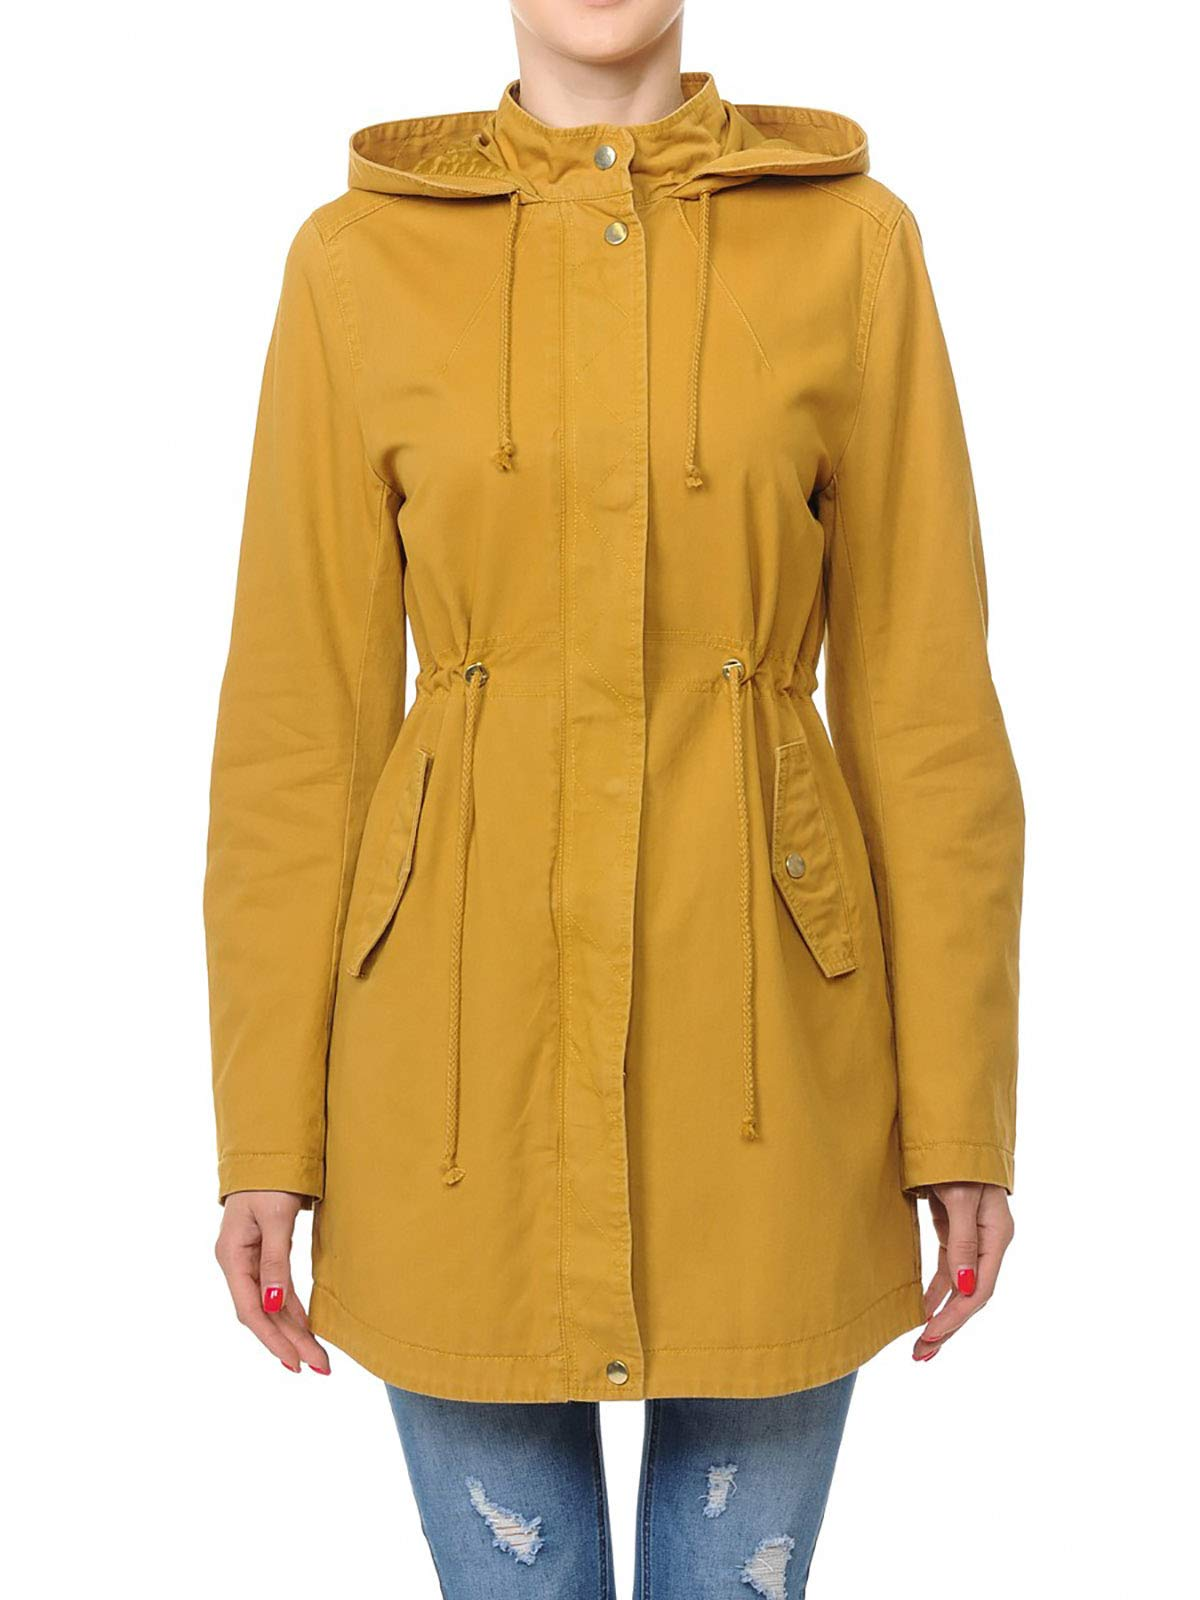 Instar Mode Women's Trendy Cotton Oversized Hooded Anorak Jacket Olive L by Instar Mode (Image #4)